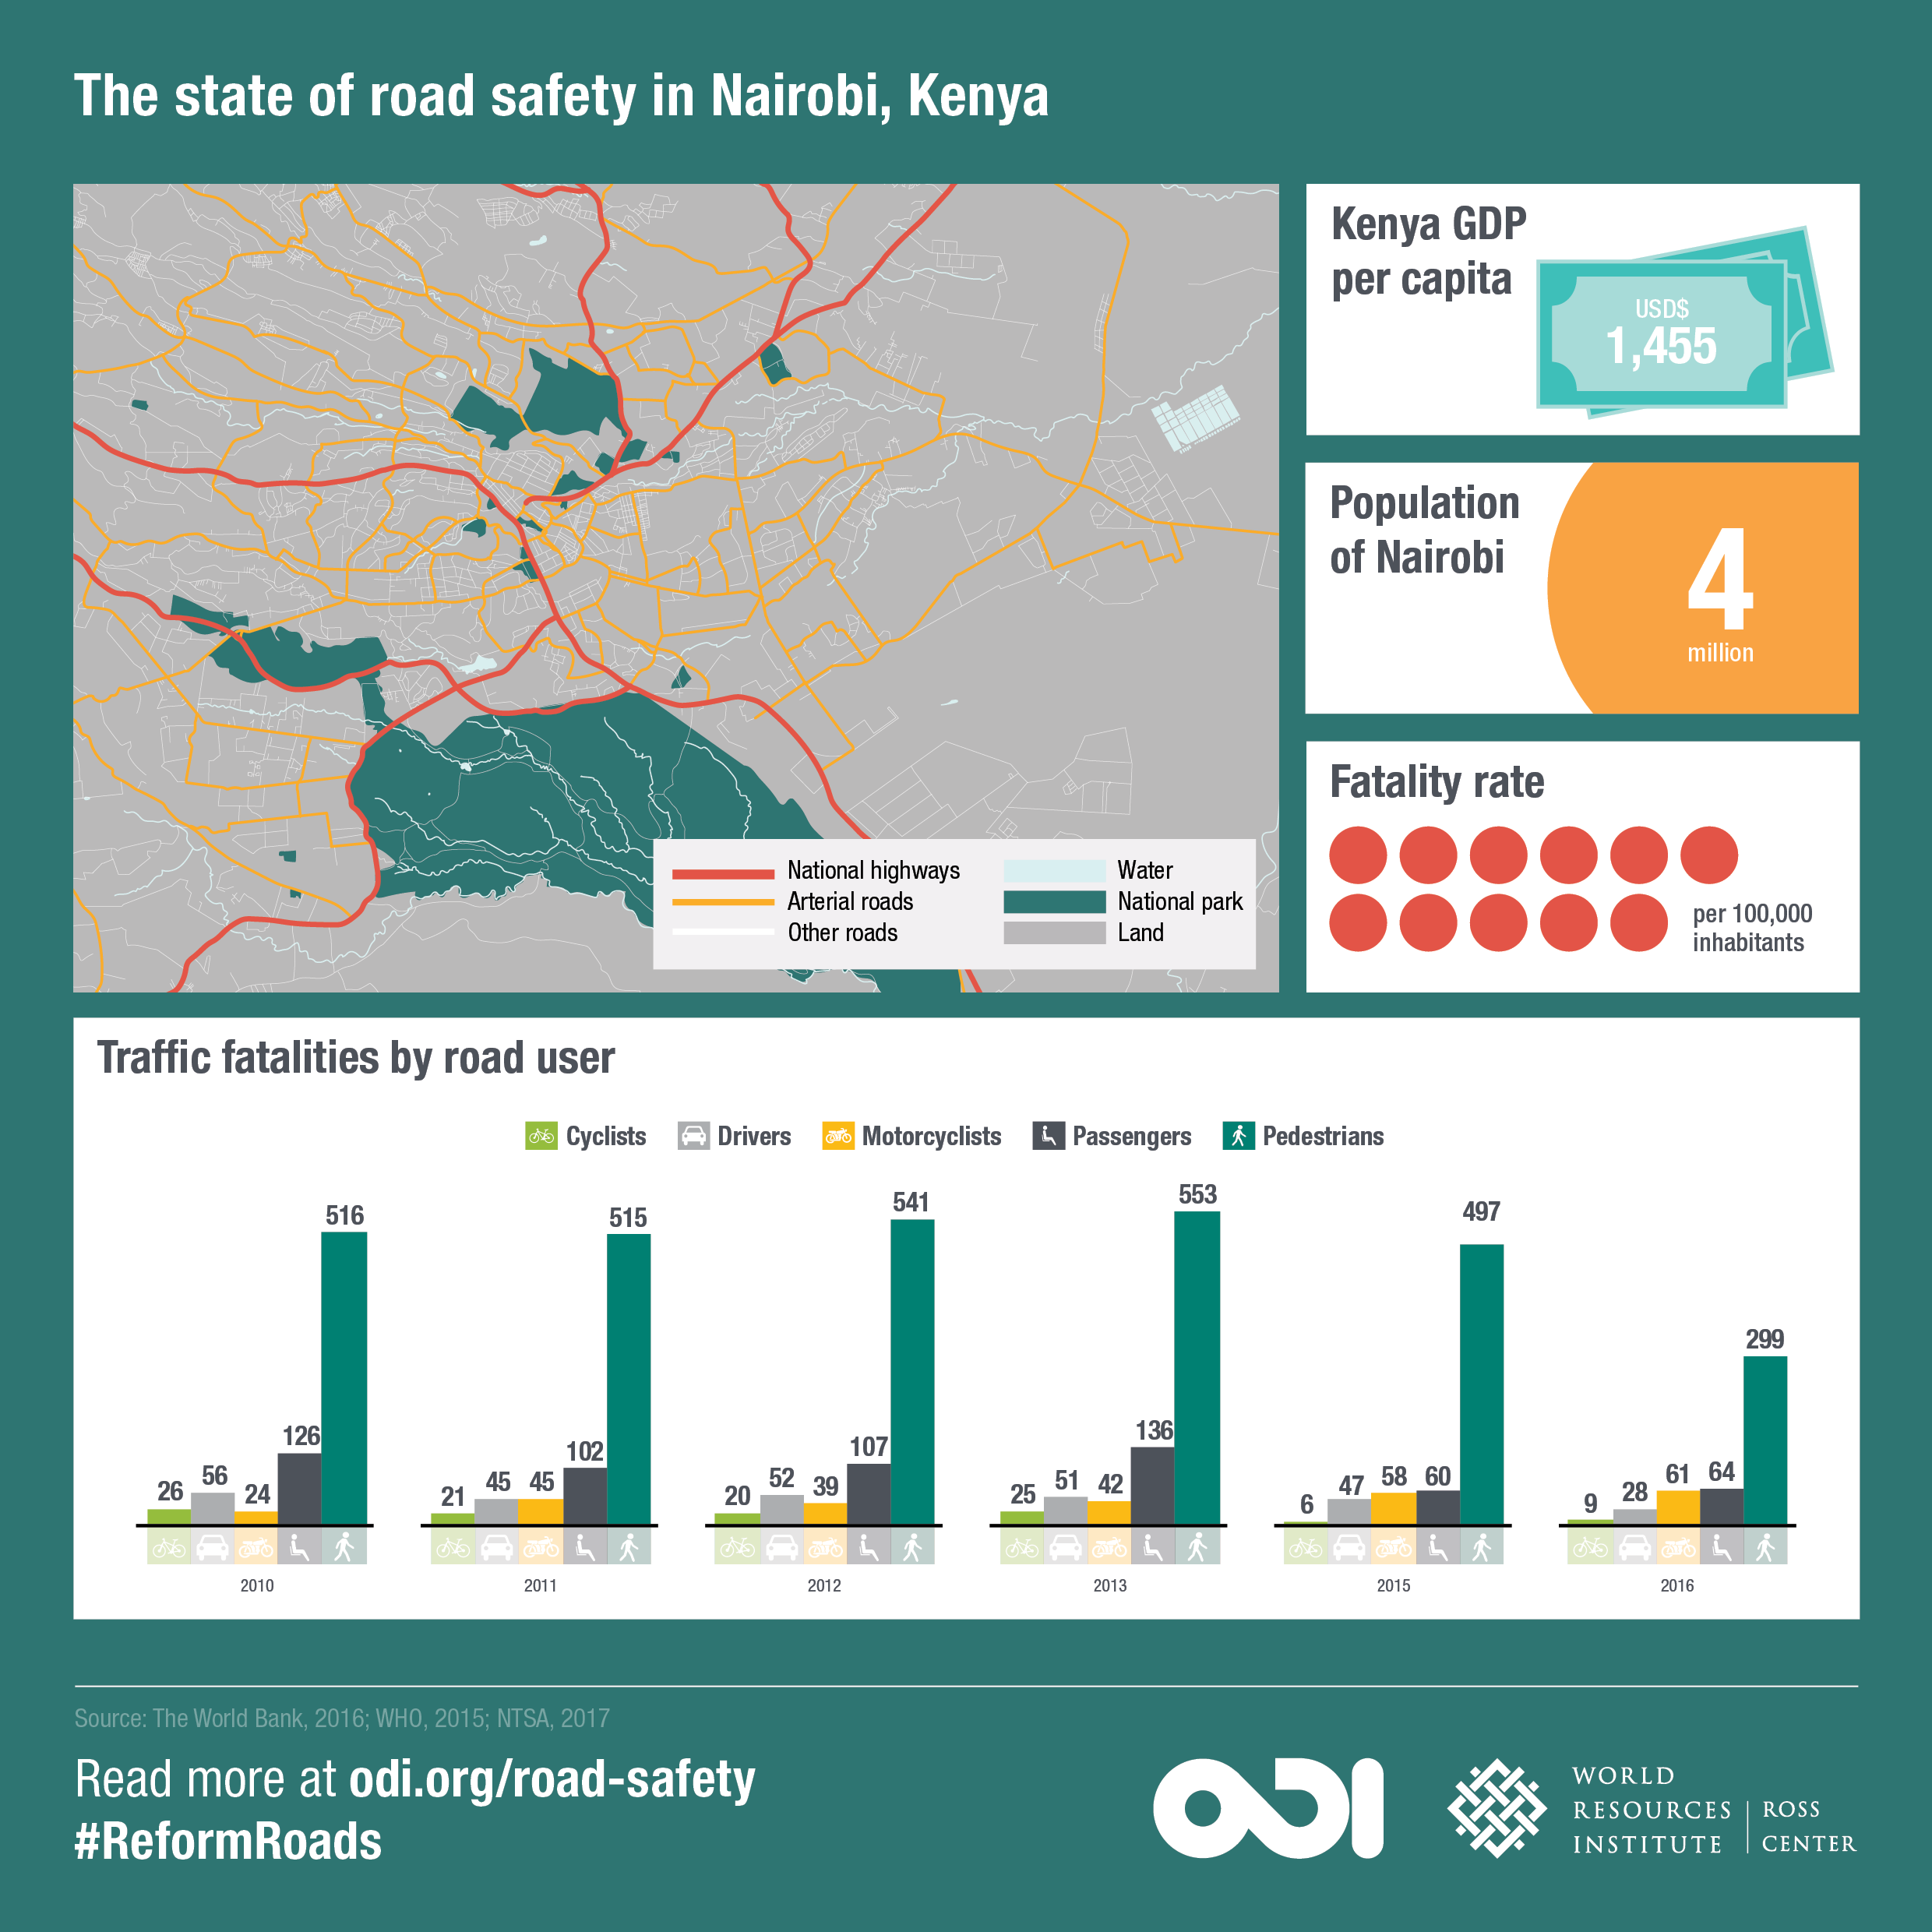 The state of road safety in Nairobi. Image: ODI and WRI